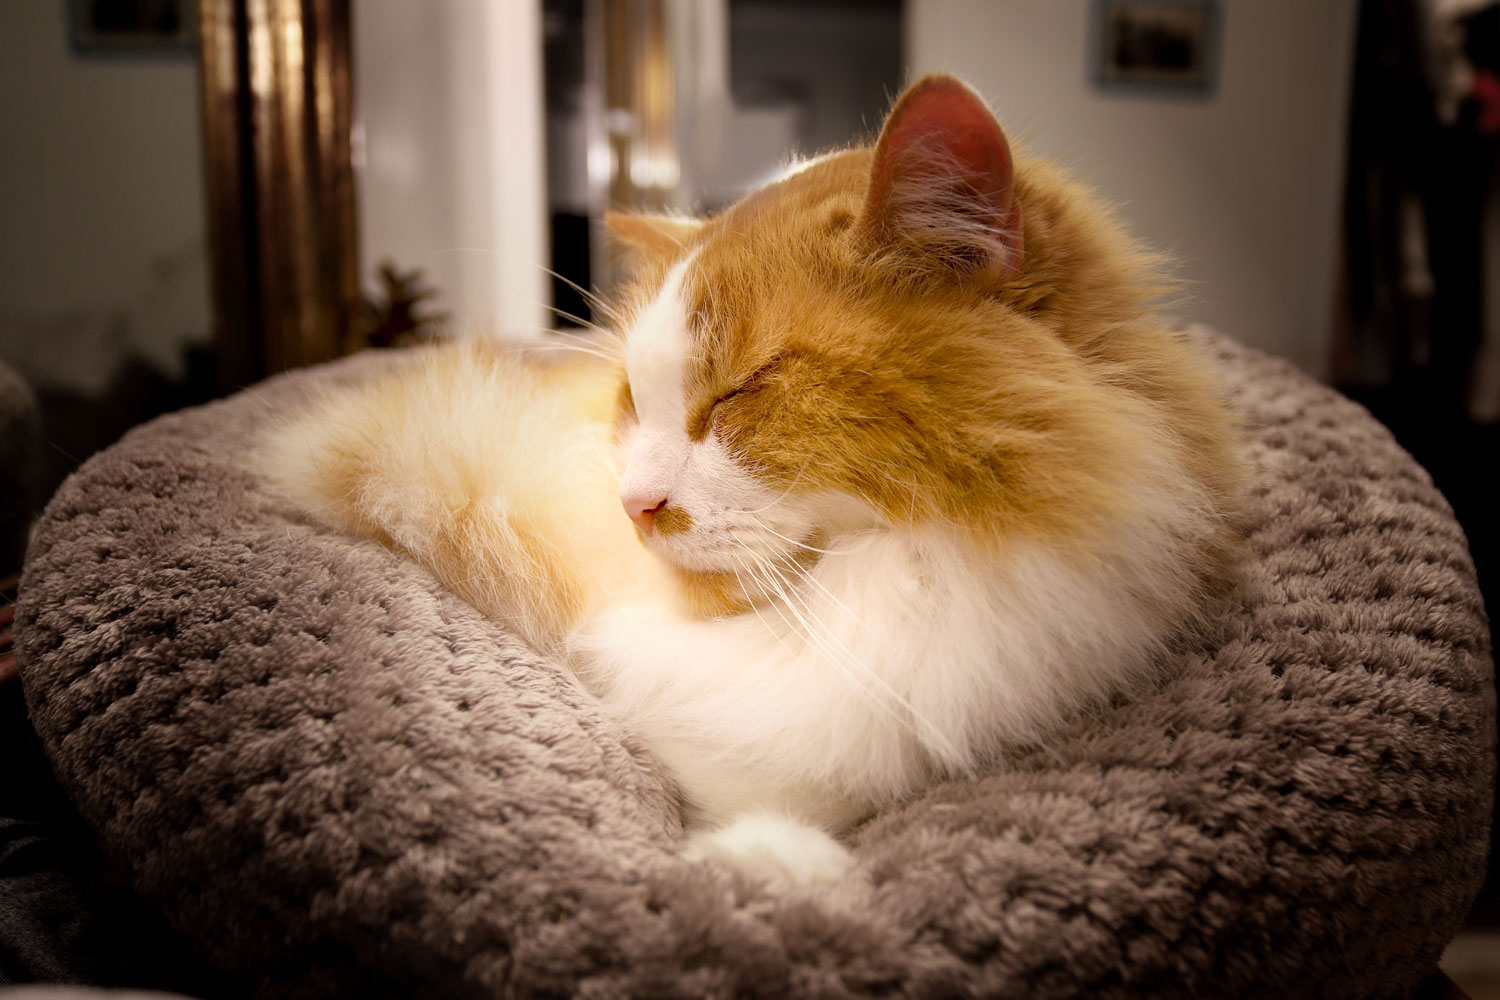 A long haired orange and white car sleeping on his small pouf bed